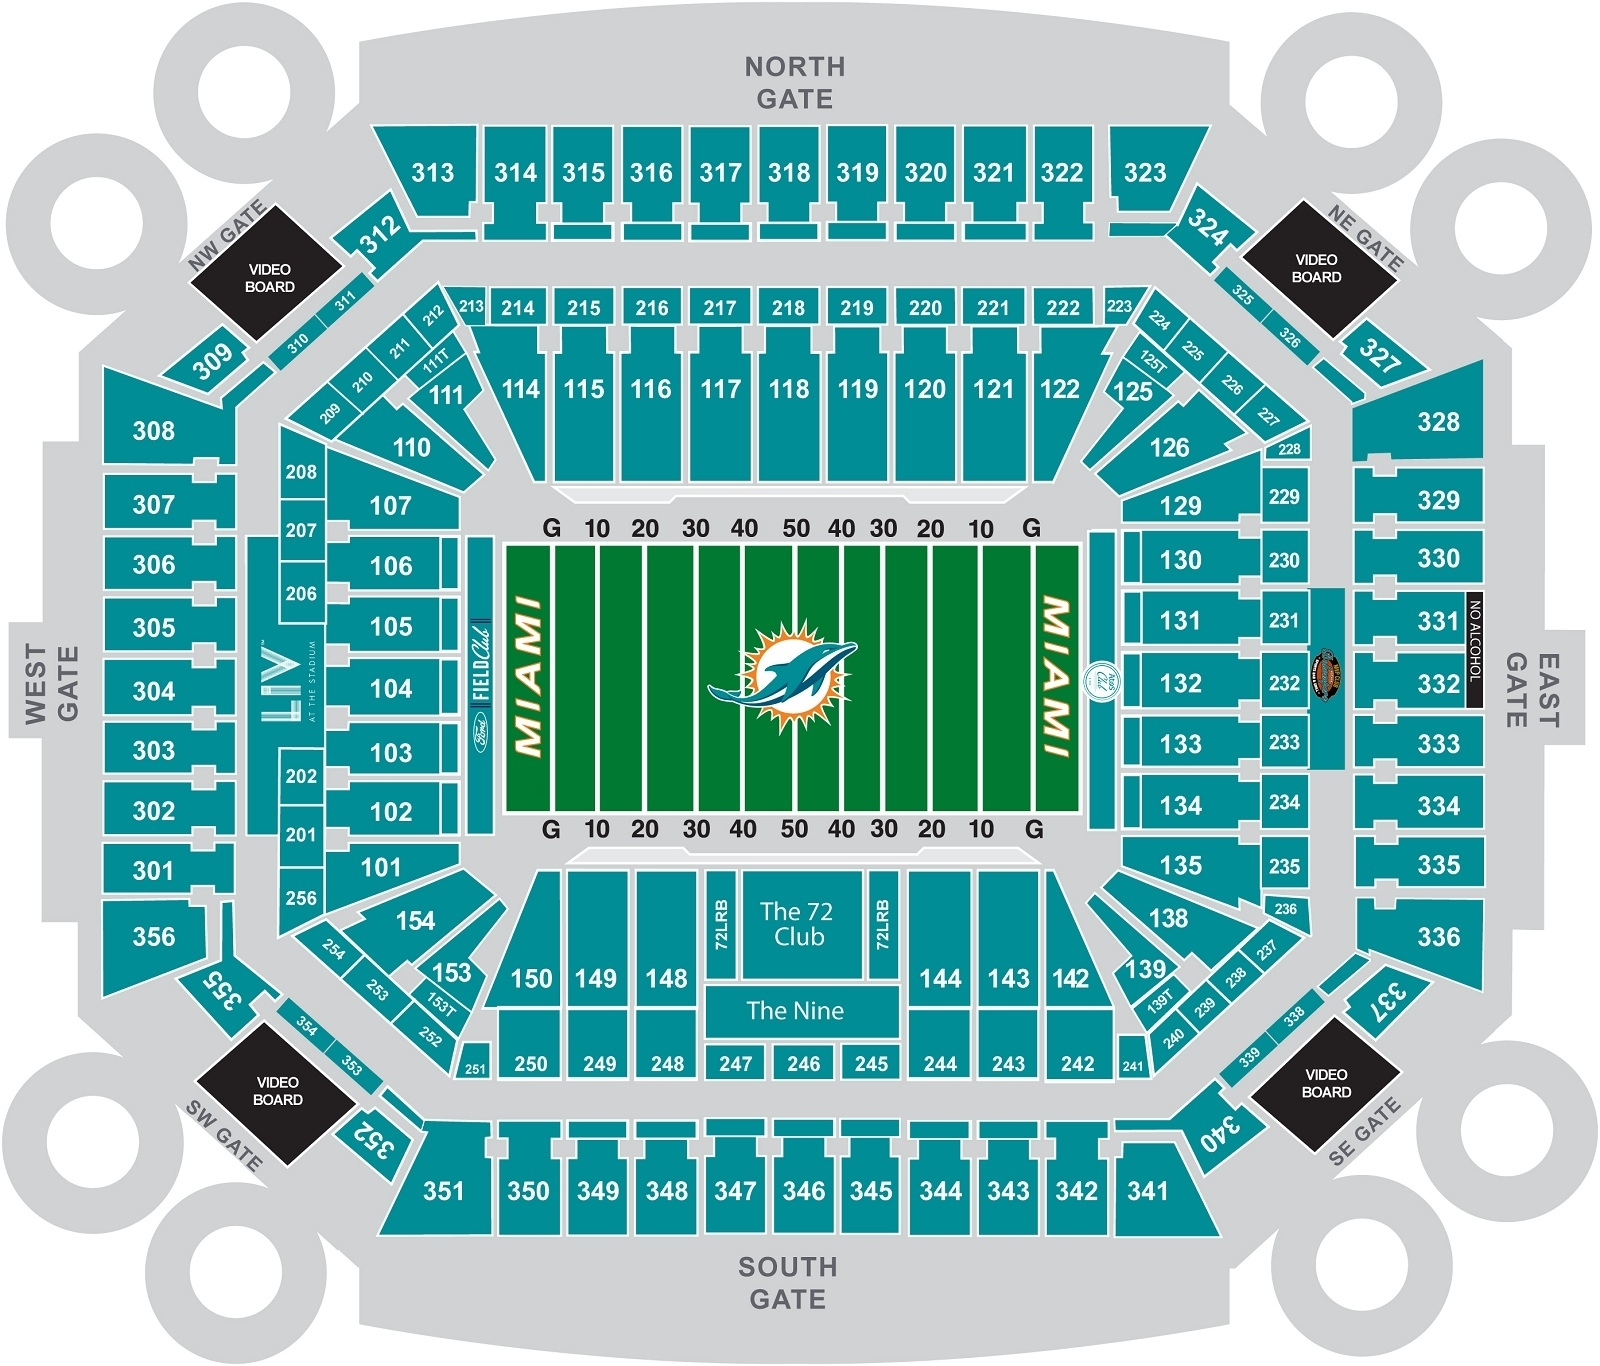 2020 Super Bowl Seating Chart   February 2, 2020   Fan intended for Super Bowl Seating Capacity 2019